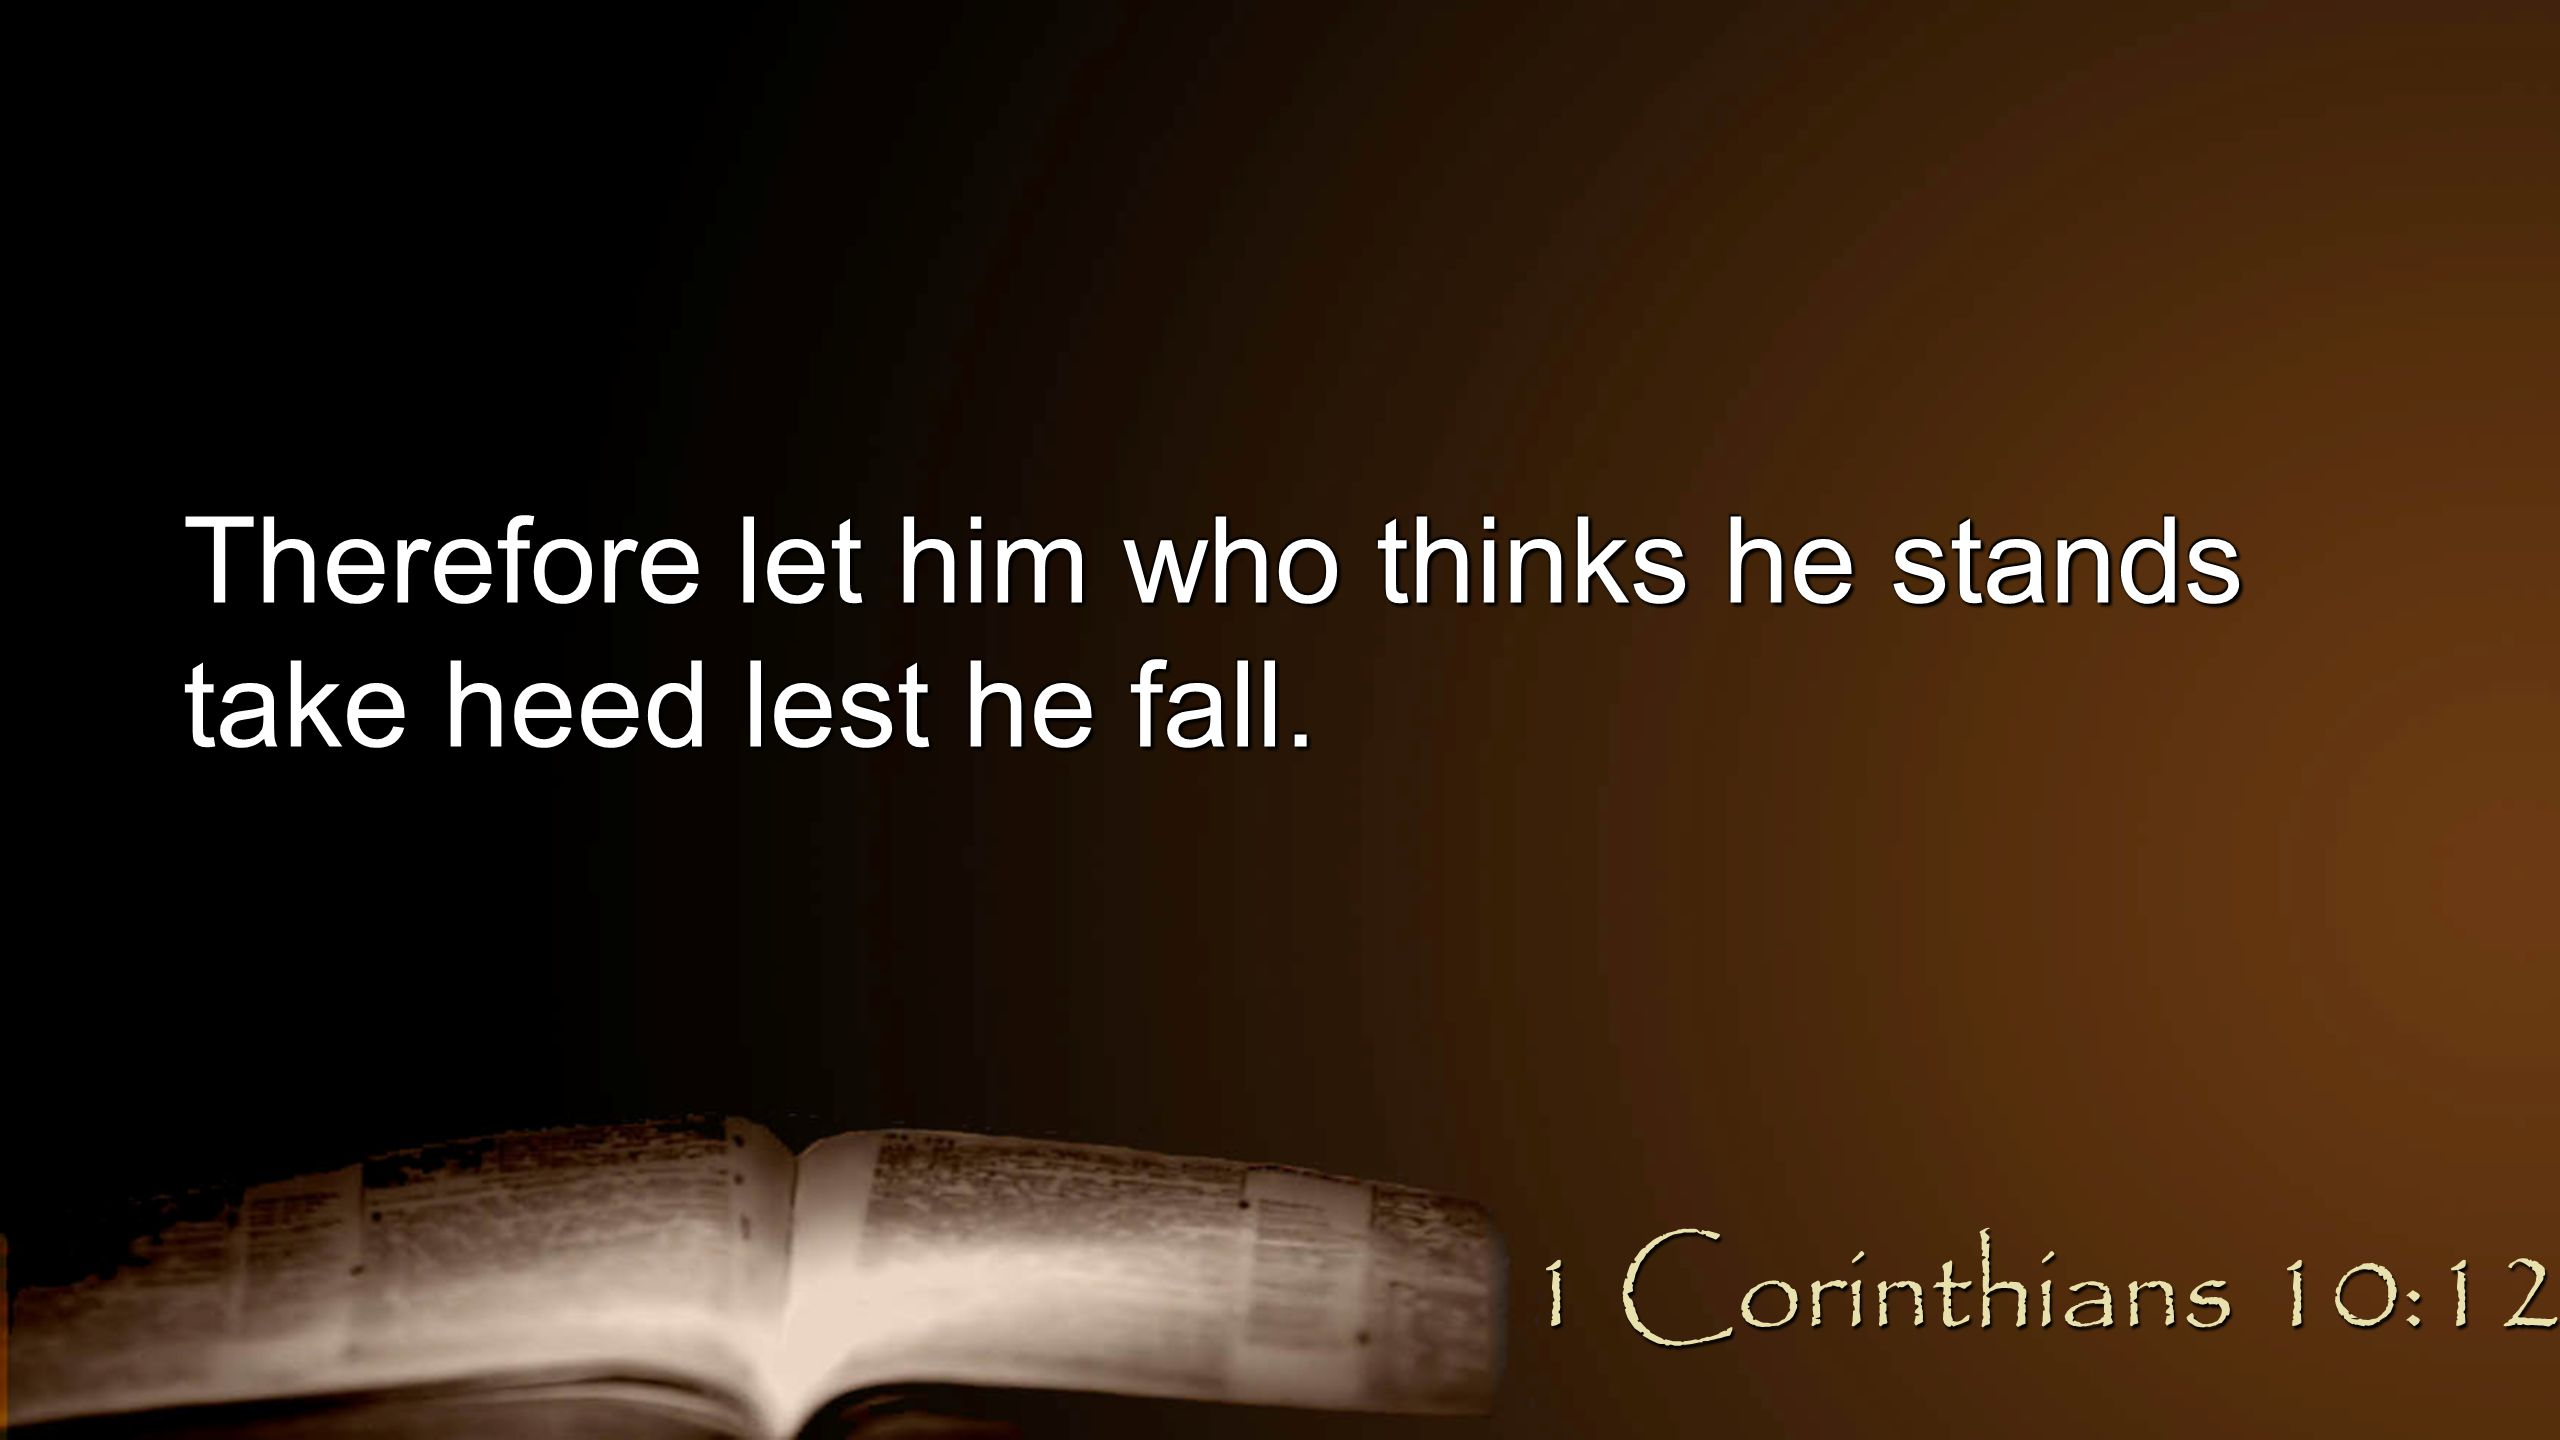 Therefore let him who thinks he stands take heed lest he fall. 1 Corinthians 10:12